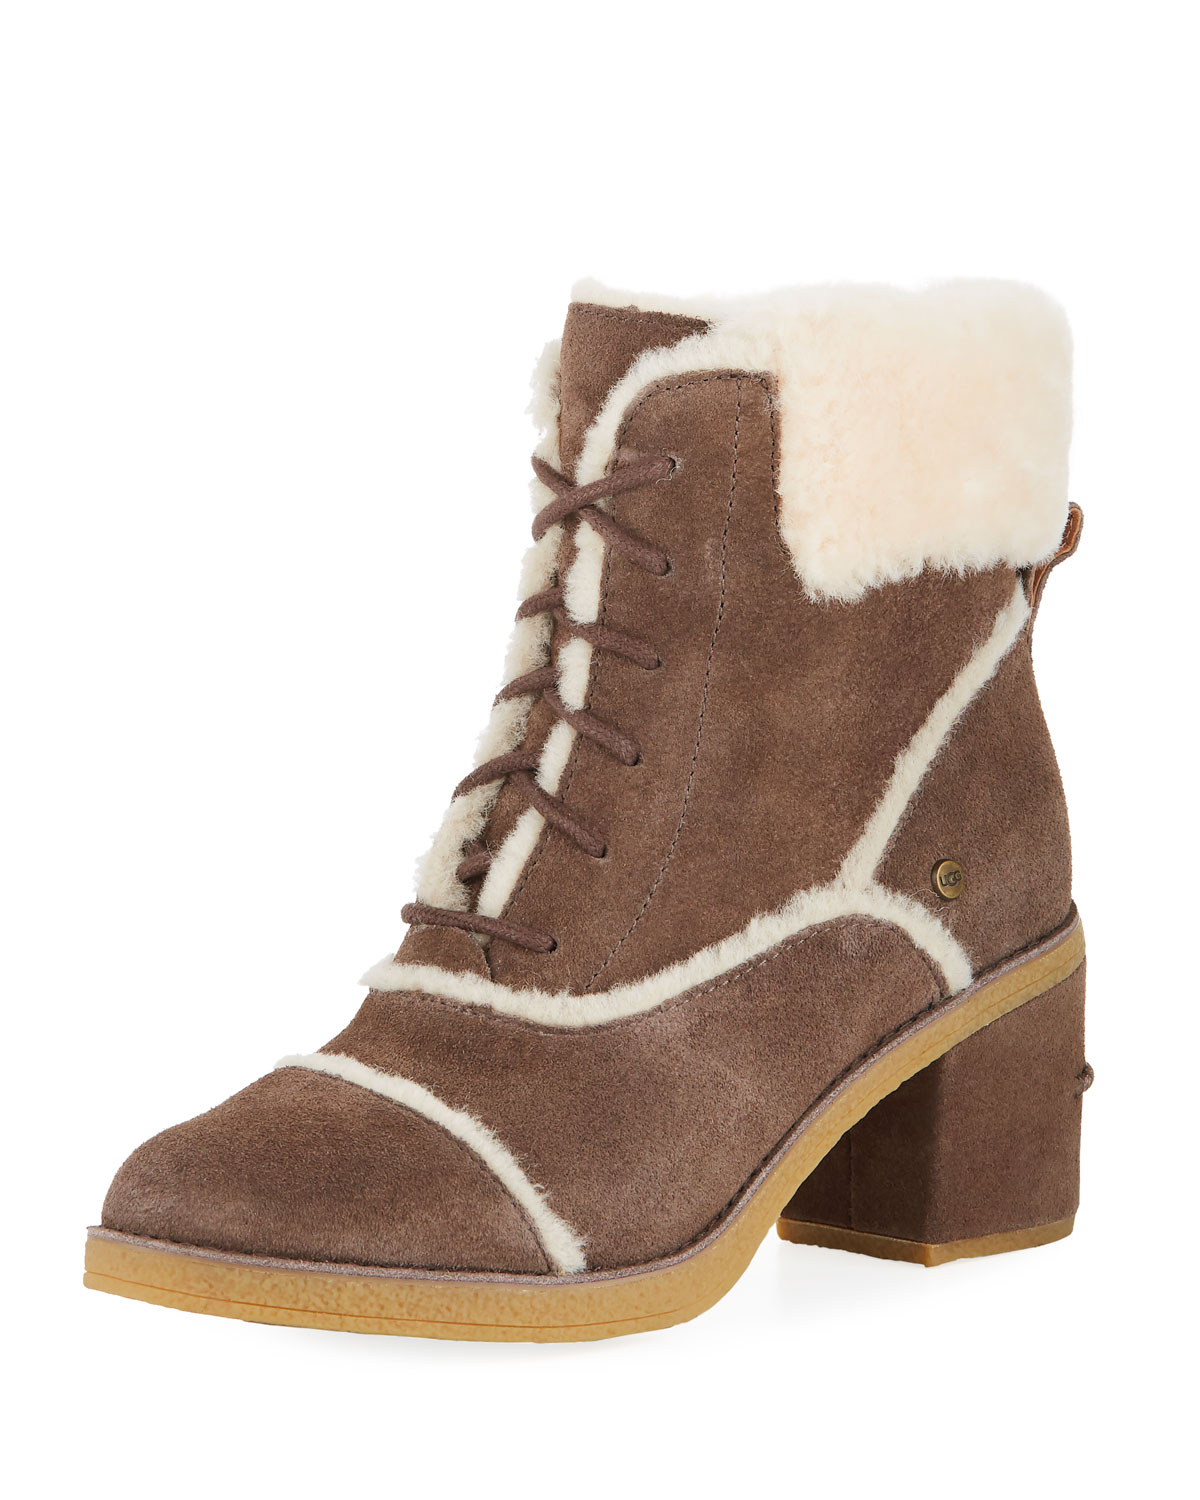 b8ce1910de6 Esterly Lace-Up Shearling Booties